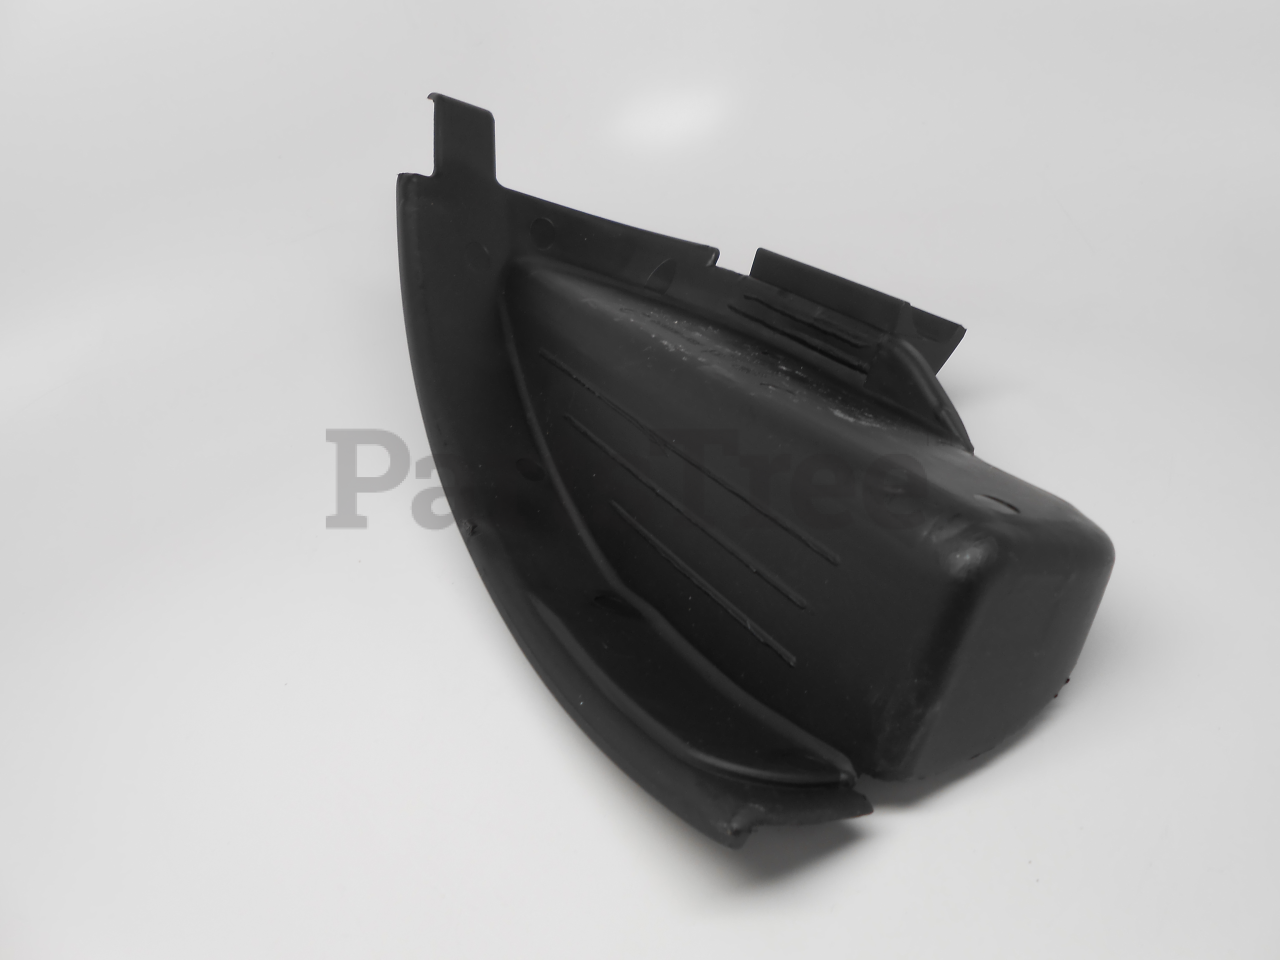 Cub Cadet Part 631 04252 Mulch Cover With Label 33